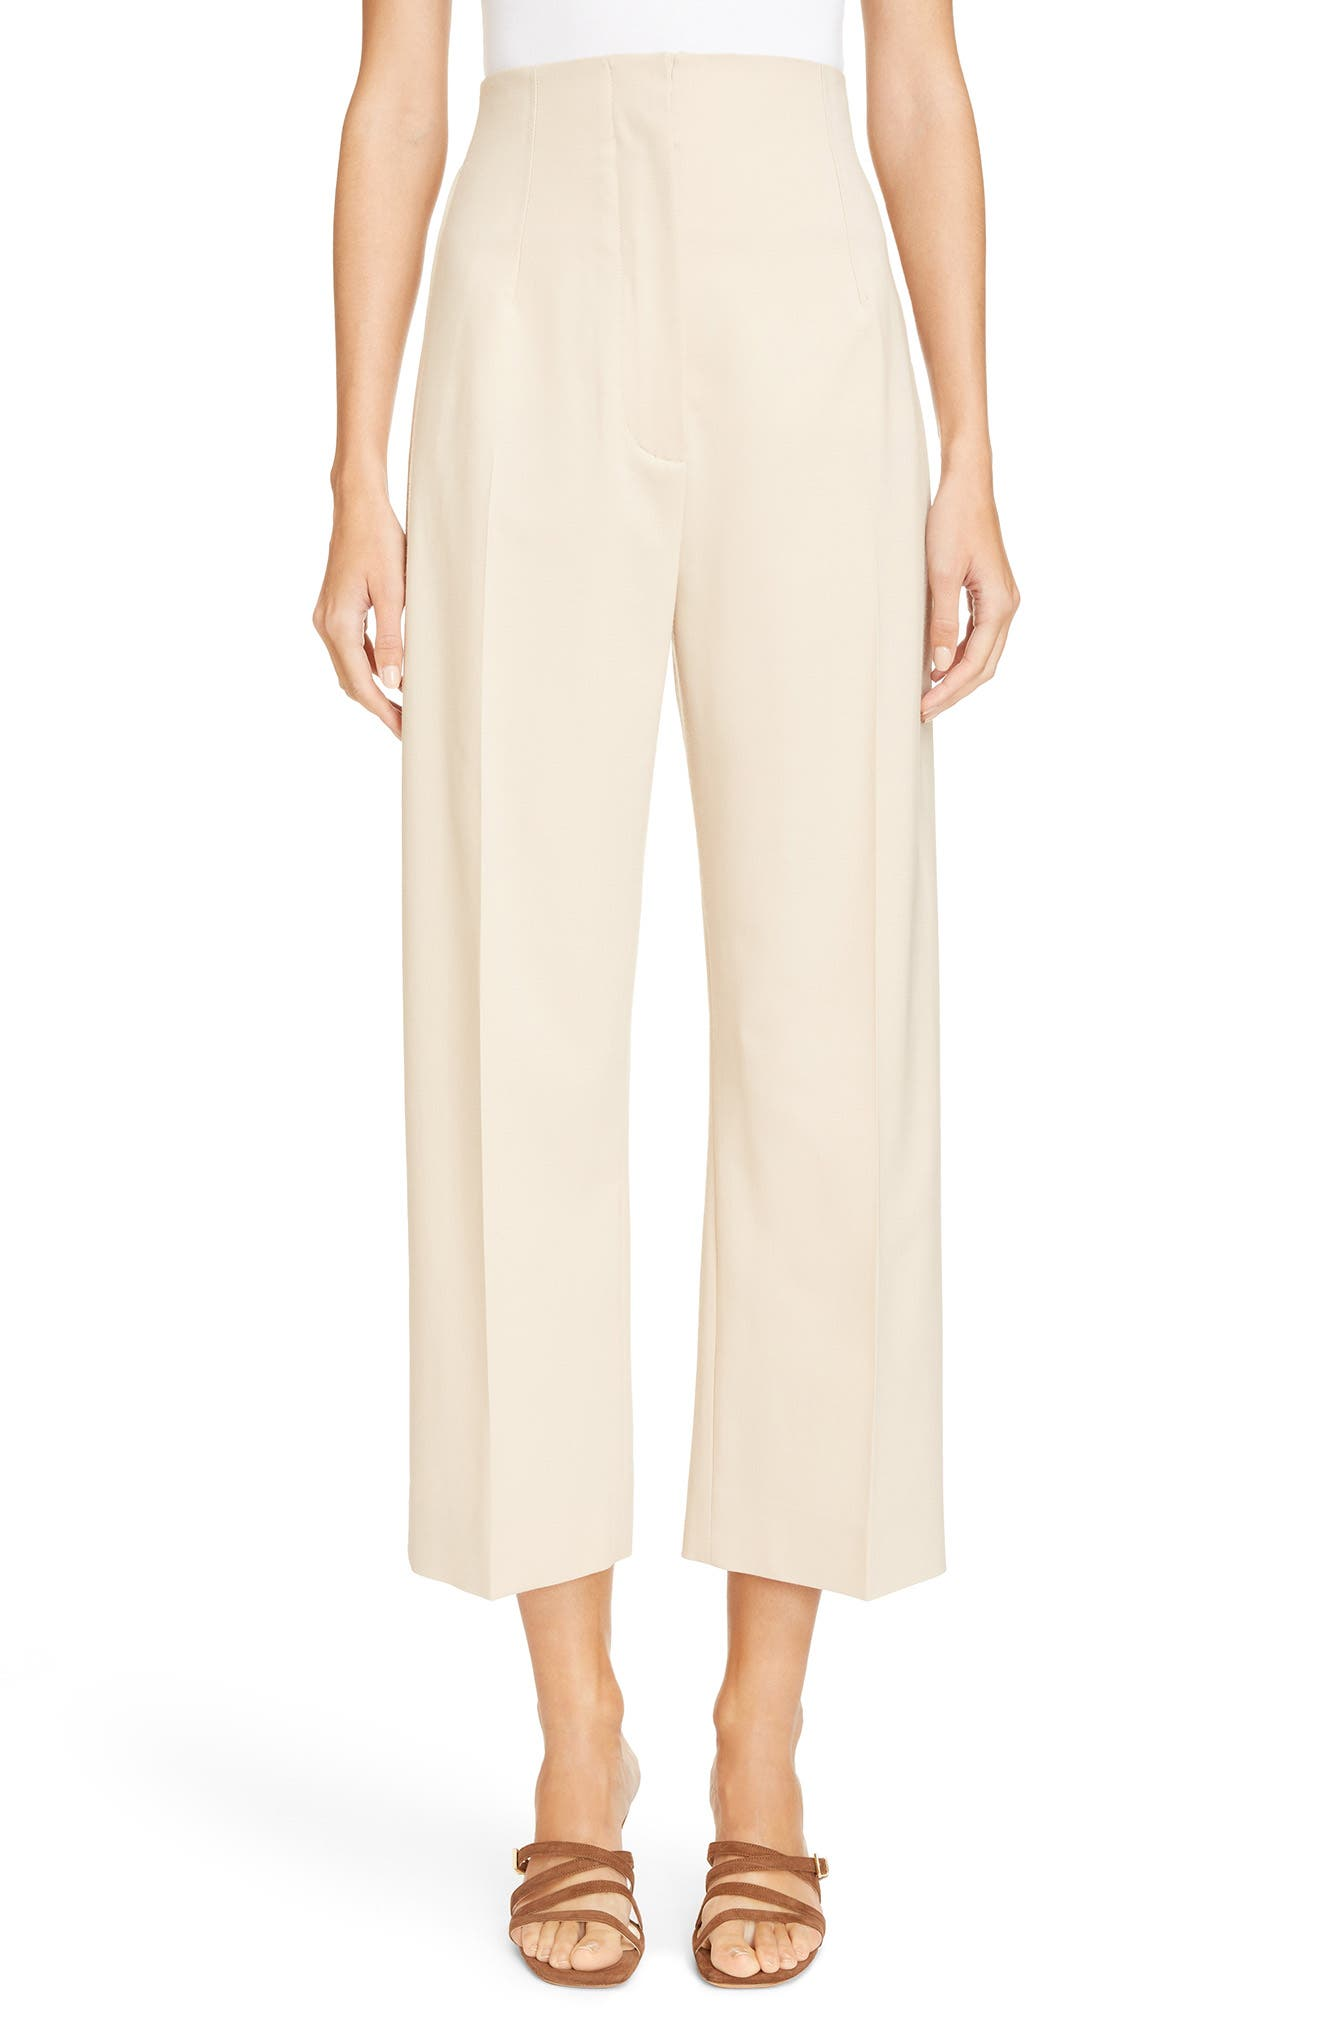 Le Pantalon Droit High Waist Crop Pants,                             Main thumbnail 1, color,                             Beige